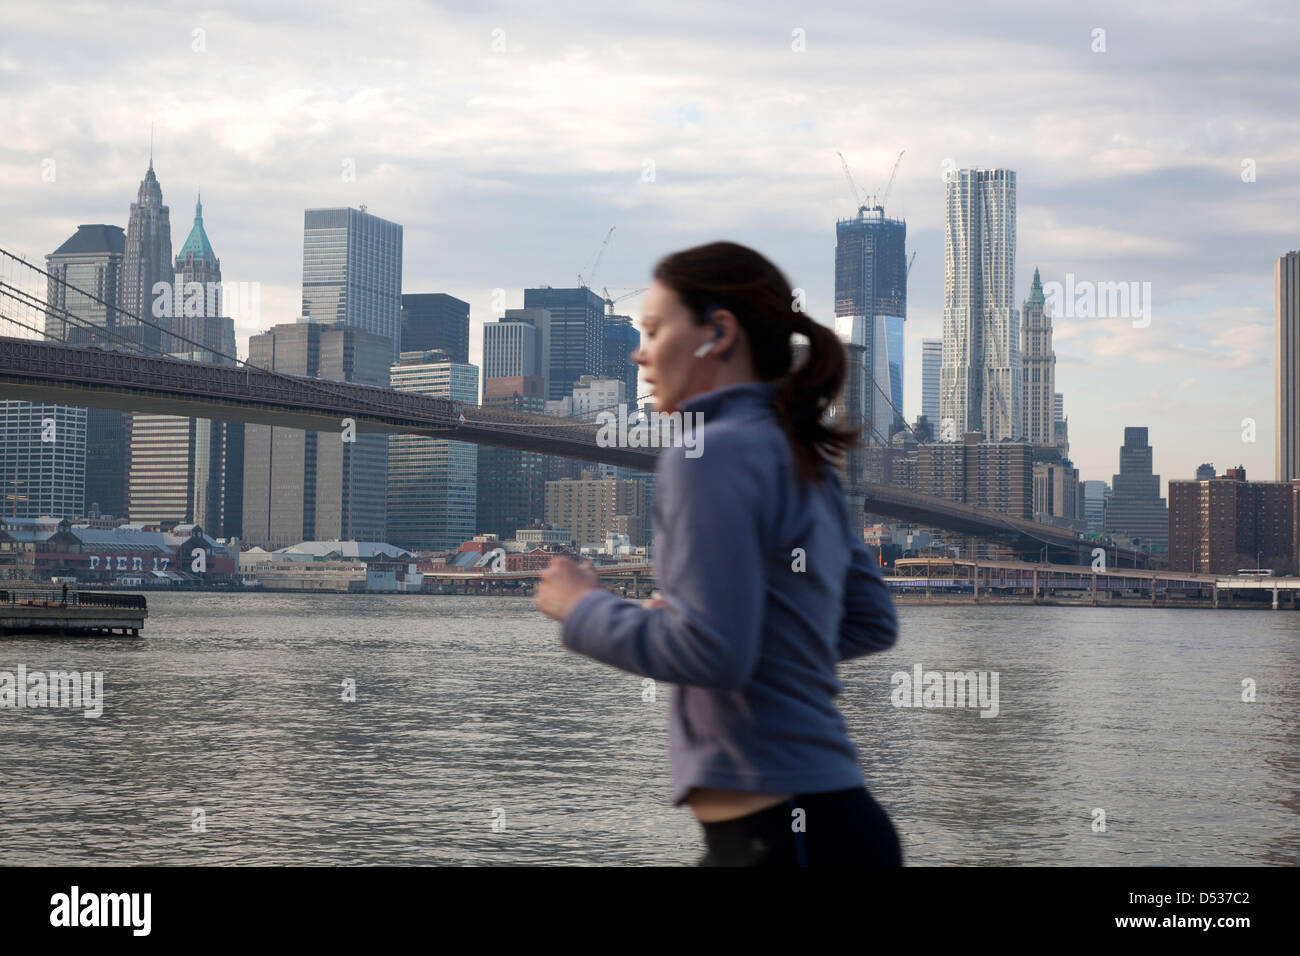 New York City Usa Female Jogger On The Banks Of The East River